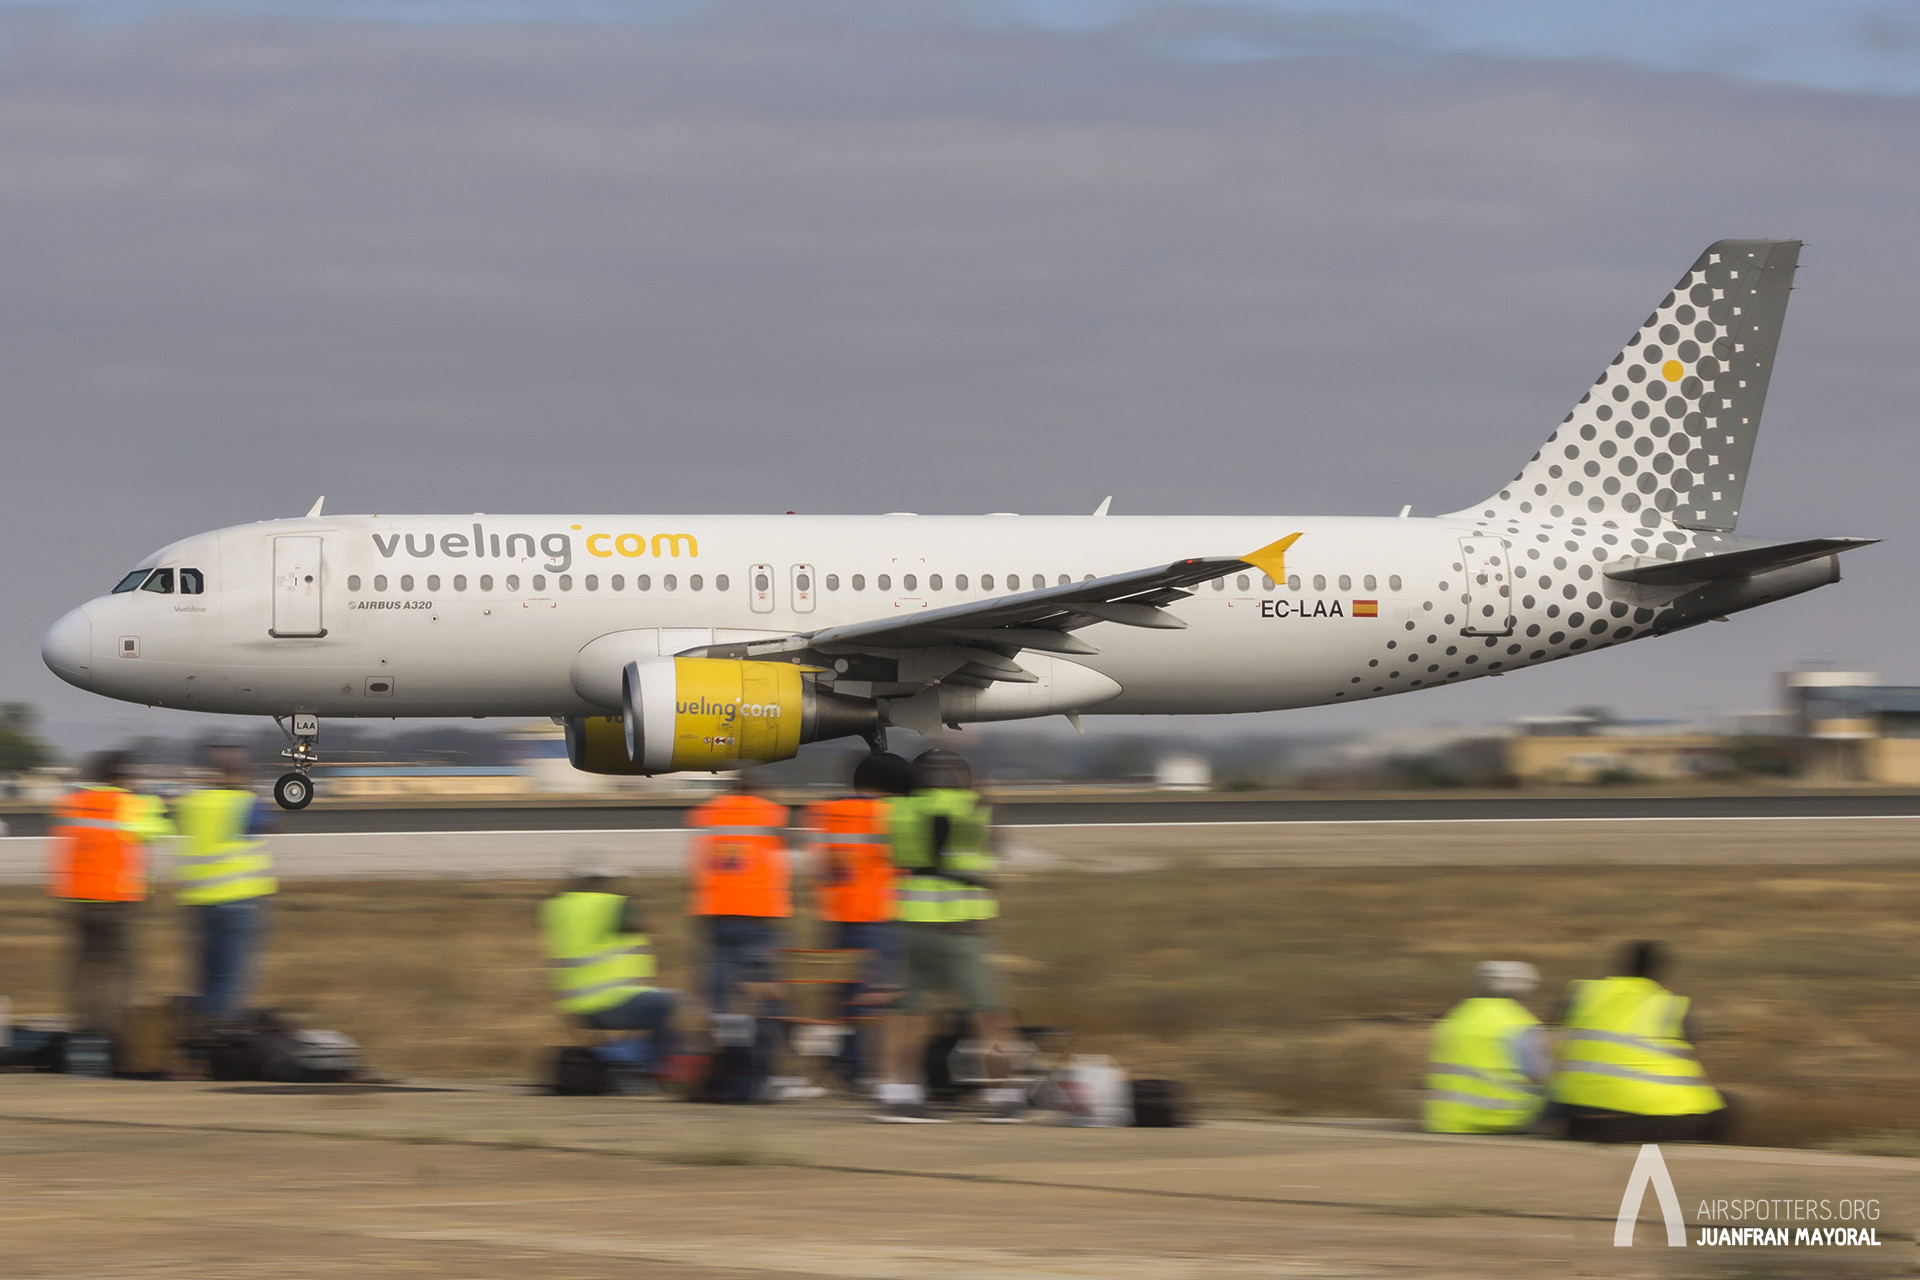 Spotting Day Sevilla. Vueling barrido